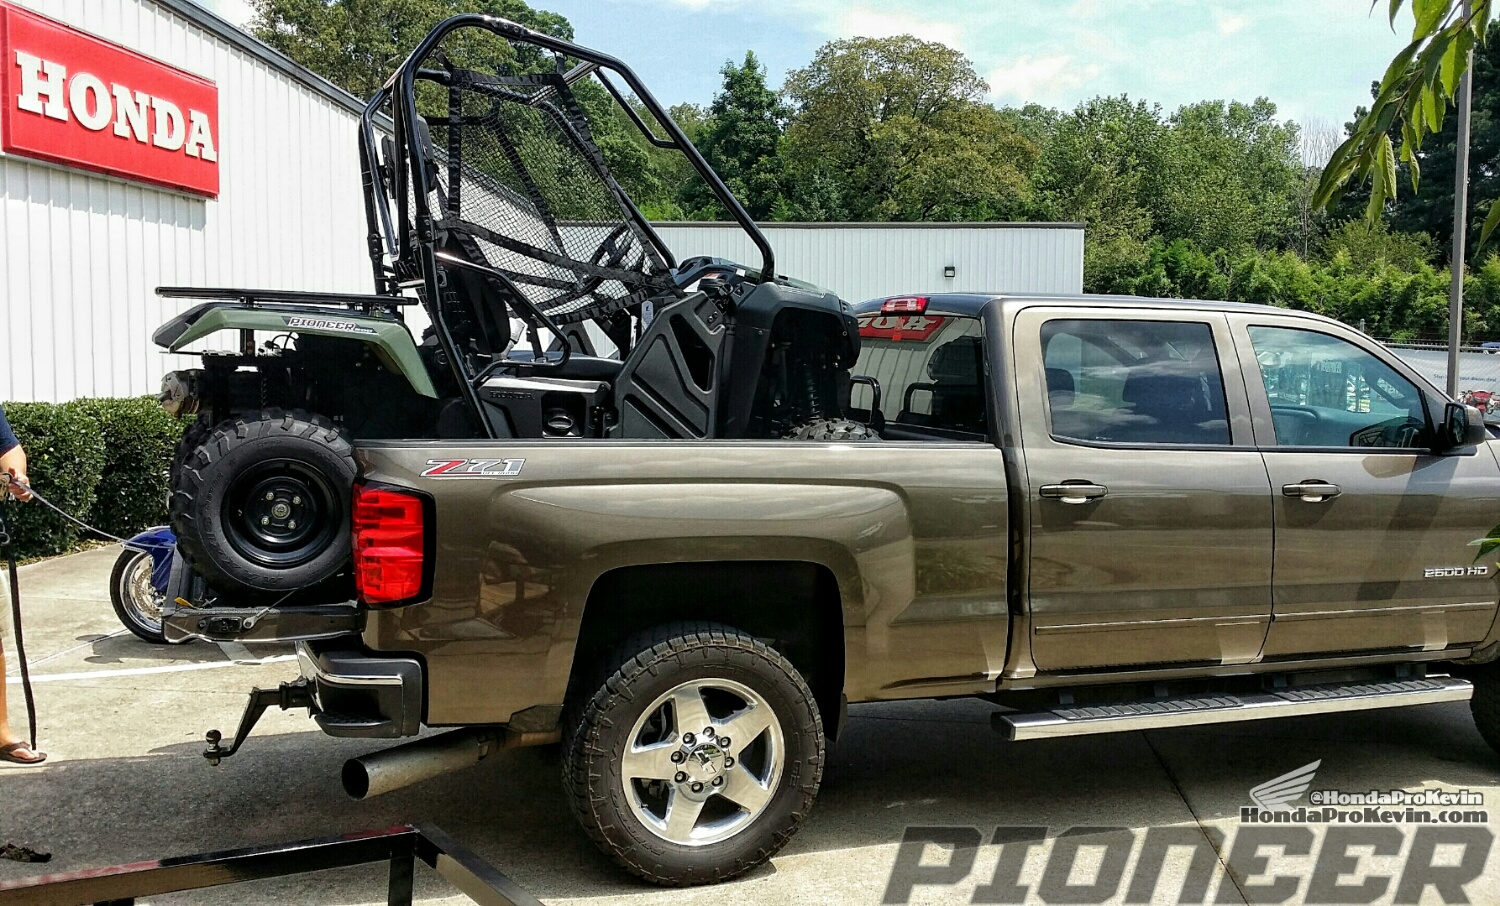 Honda Pioneer 500 SxS / UTV / Side by Side ATV in Pickup Truck Bed